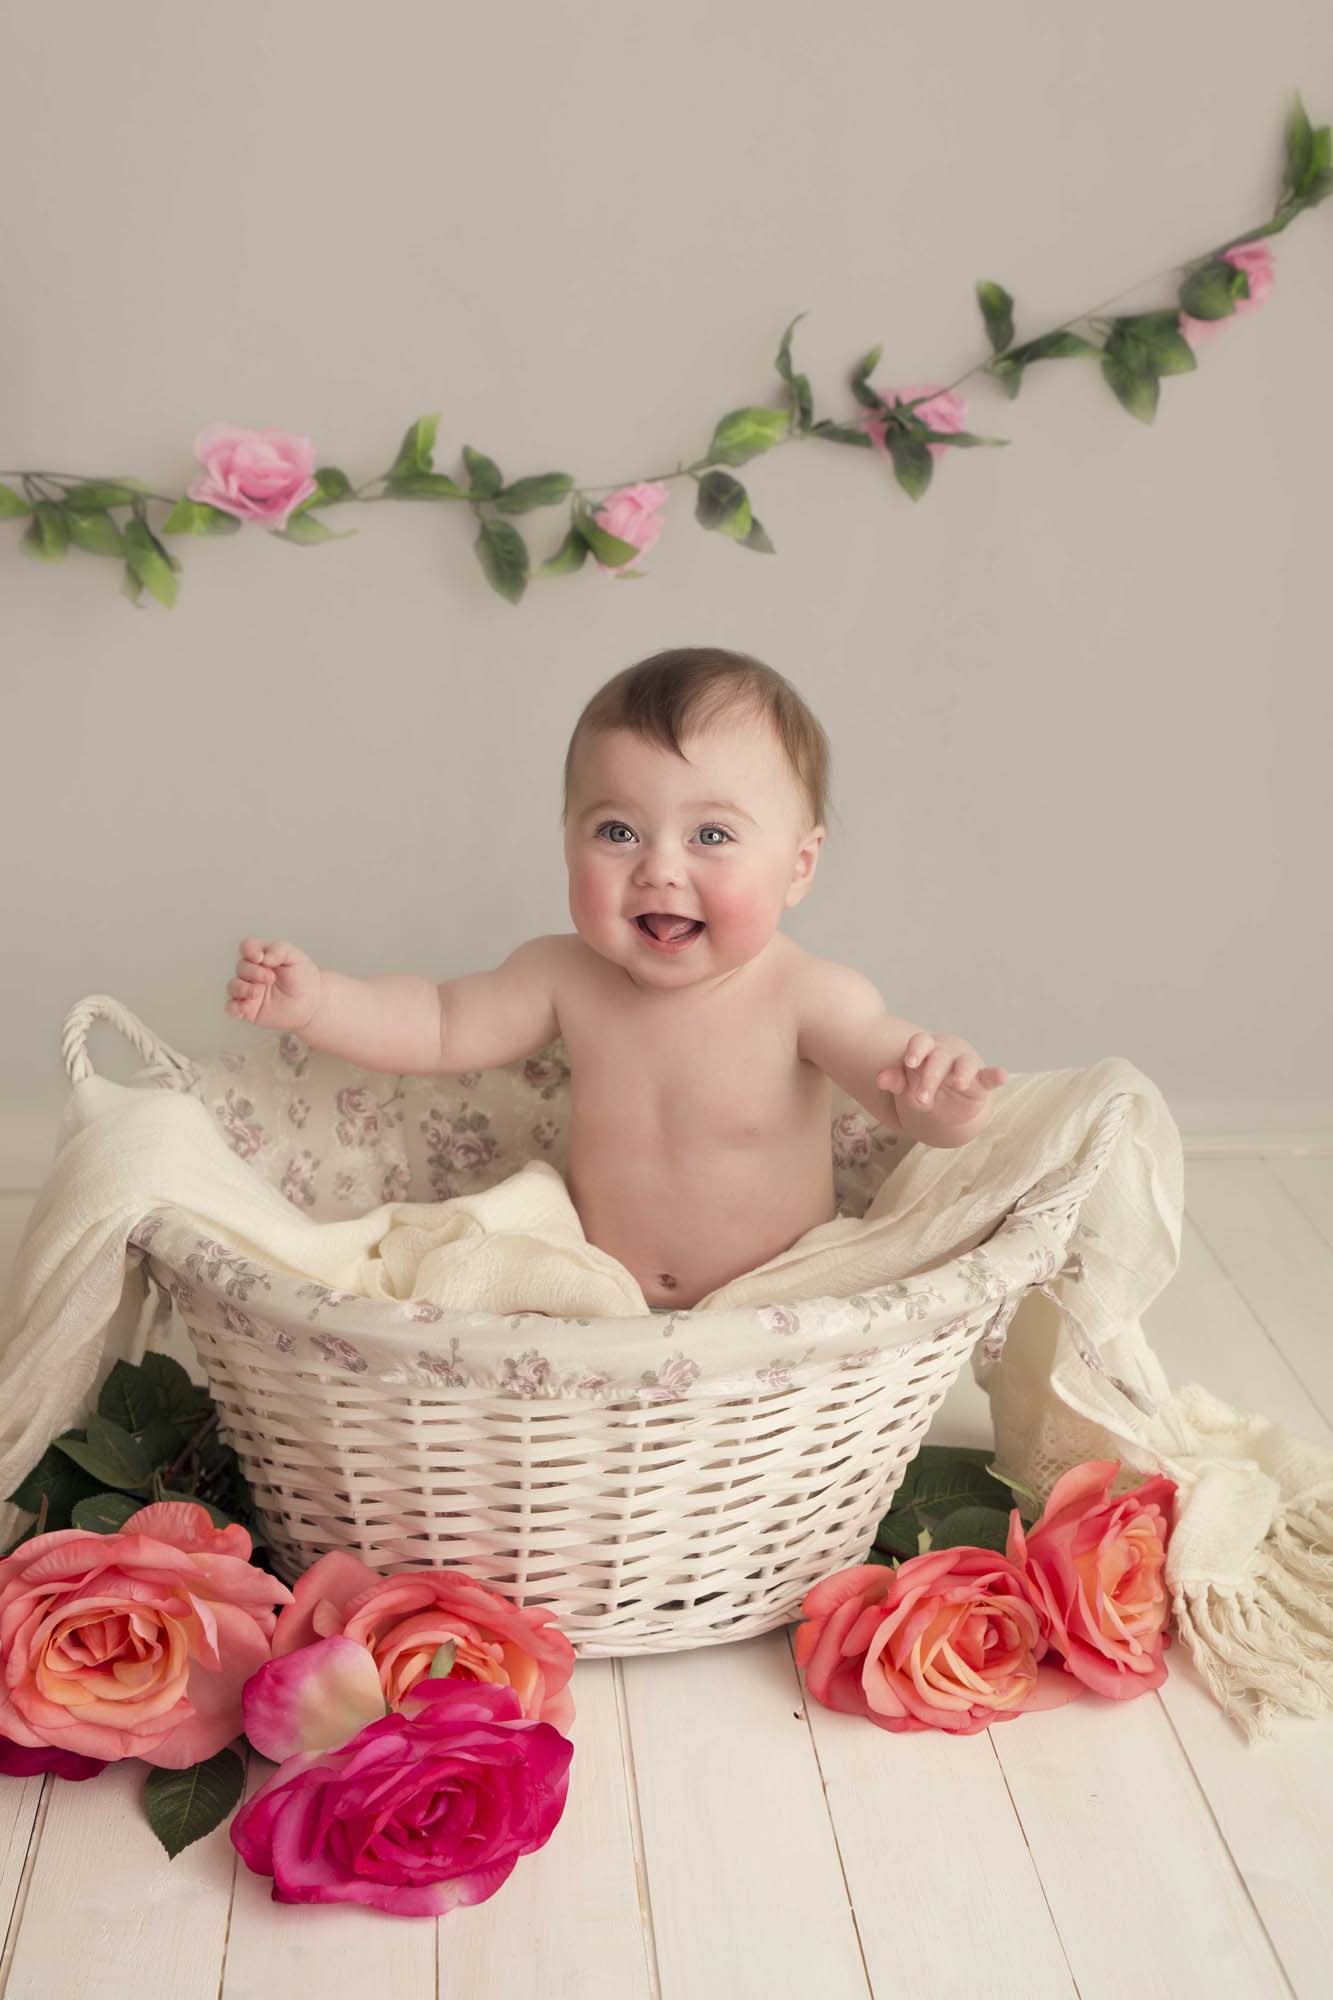 baby girl sitting in basket with flowers photographed by Baby Photographer Manchester